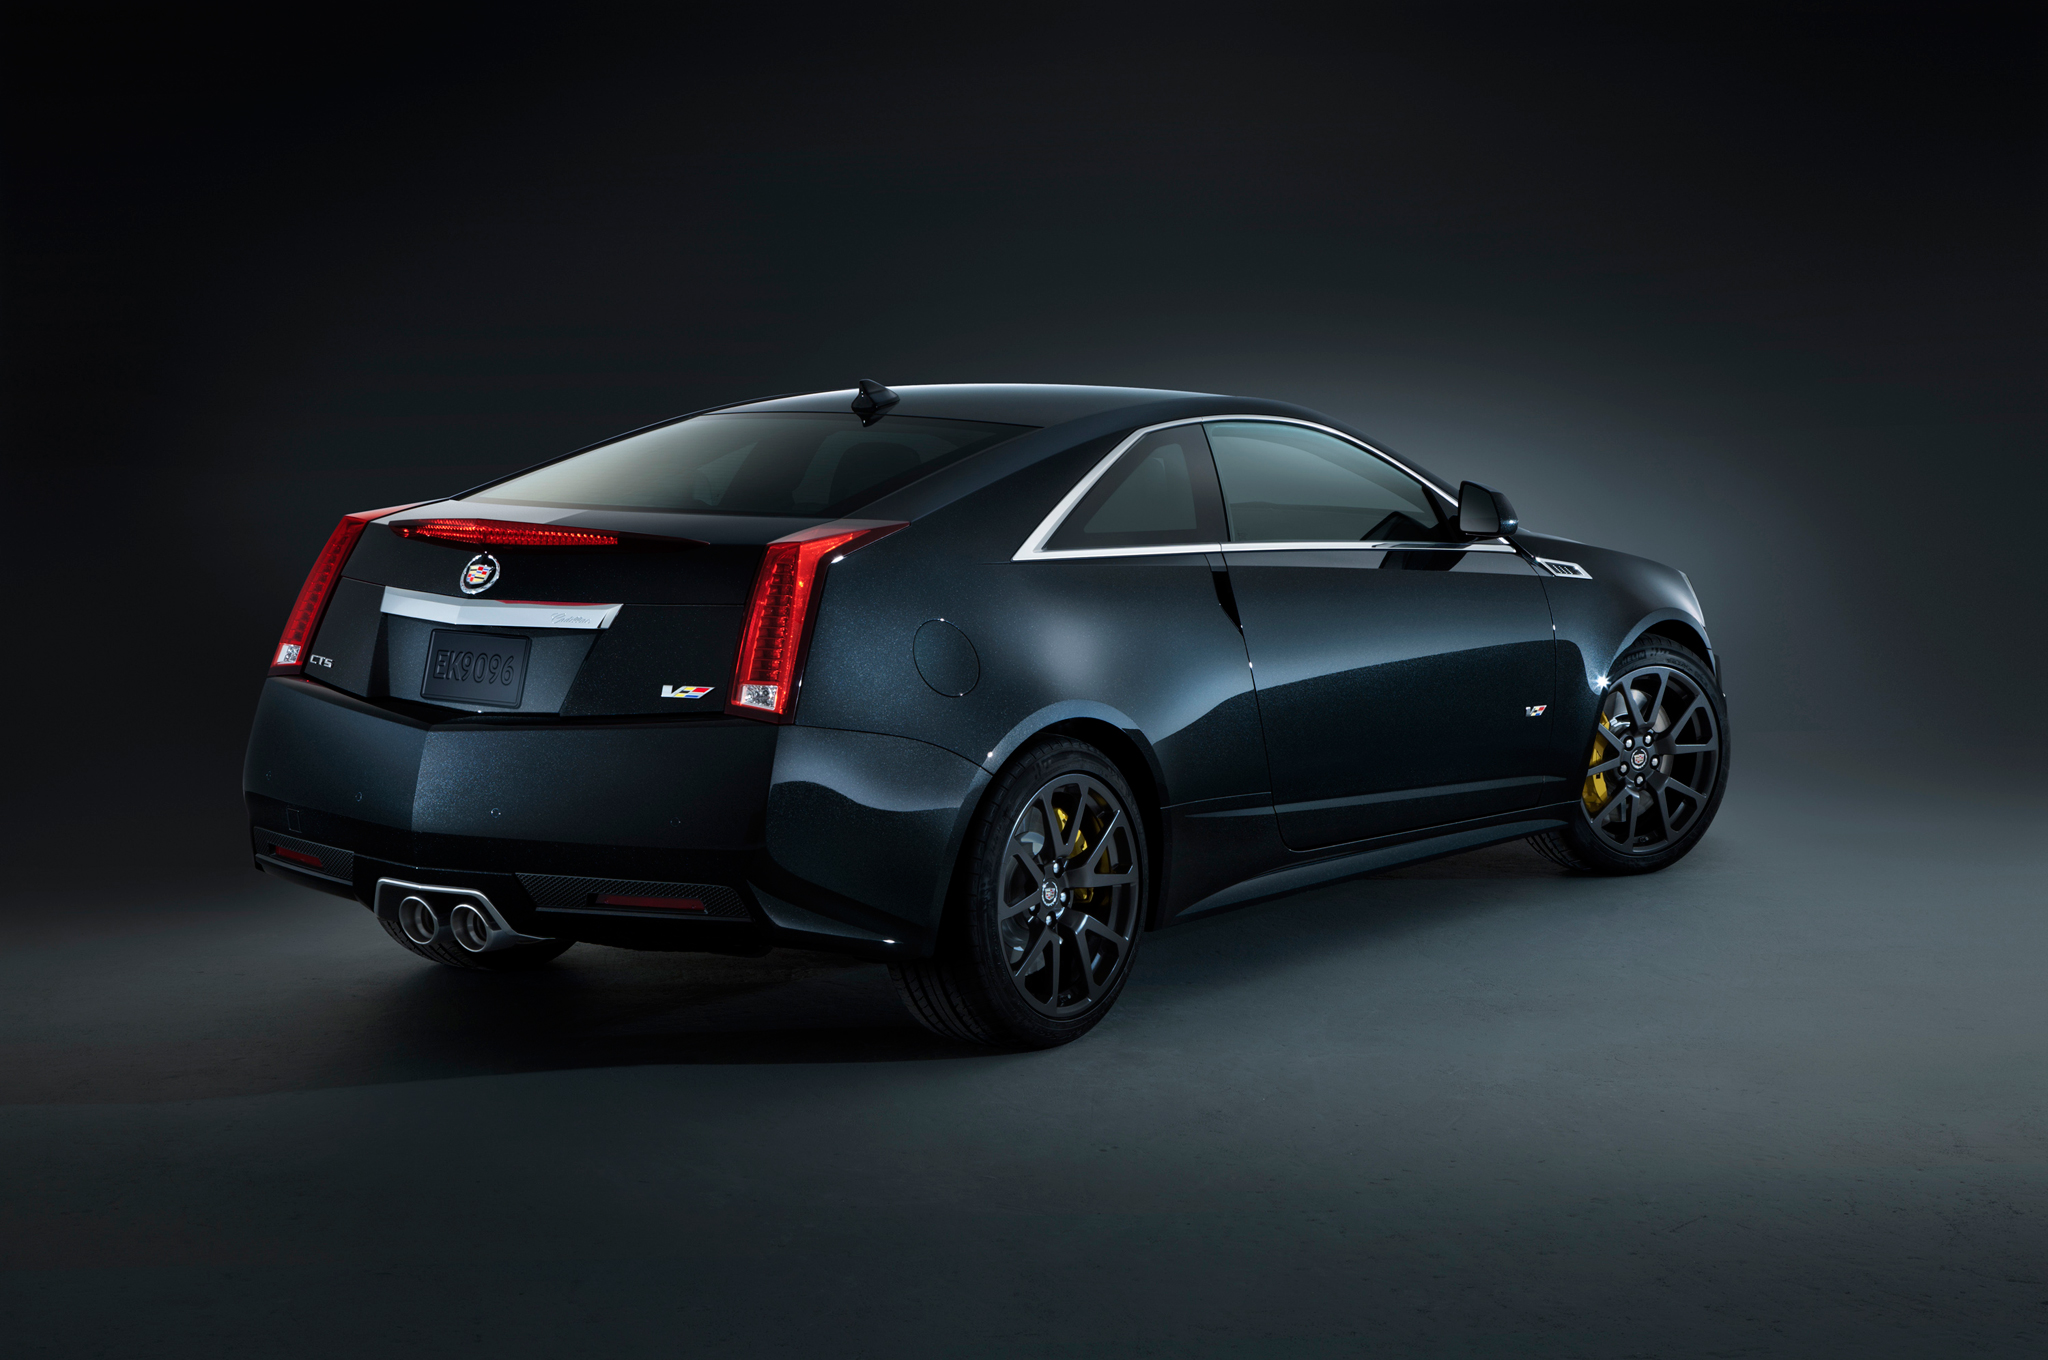 2013 Cadillac Cts-v Coupe #16